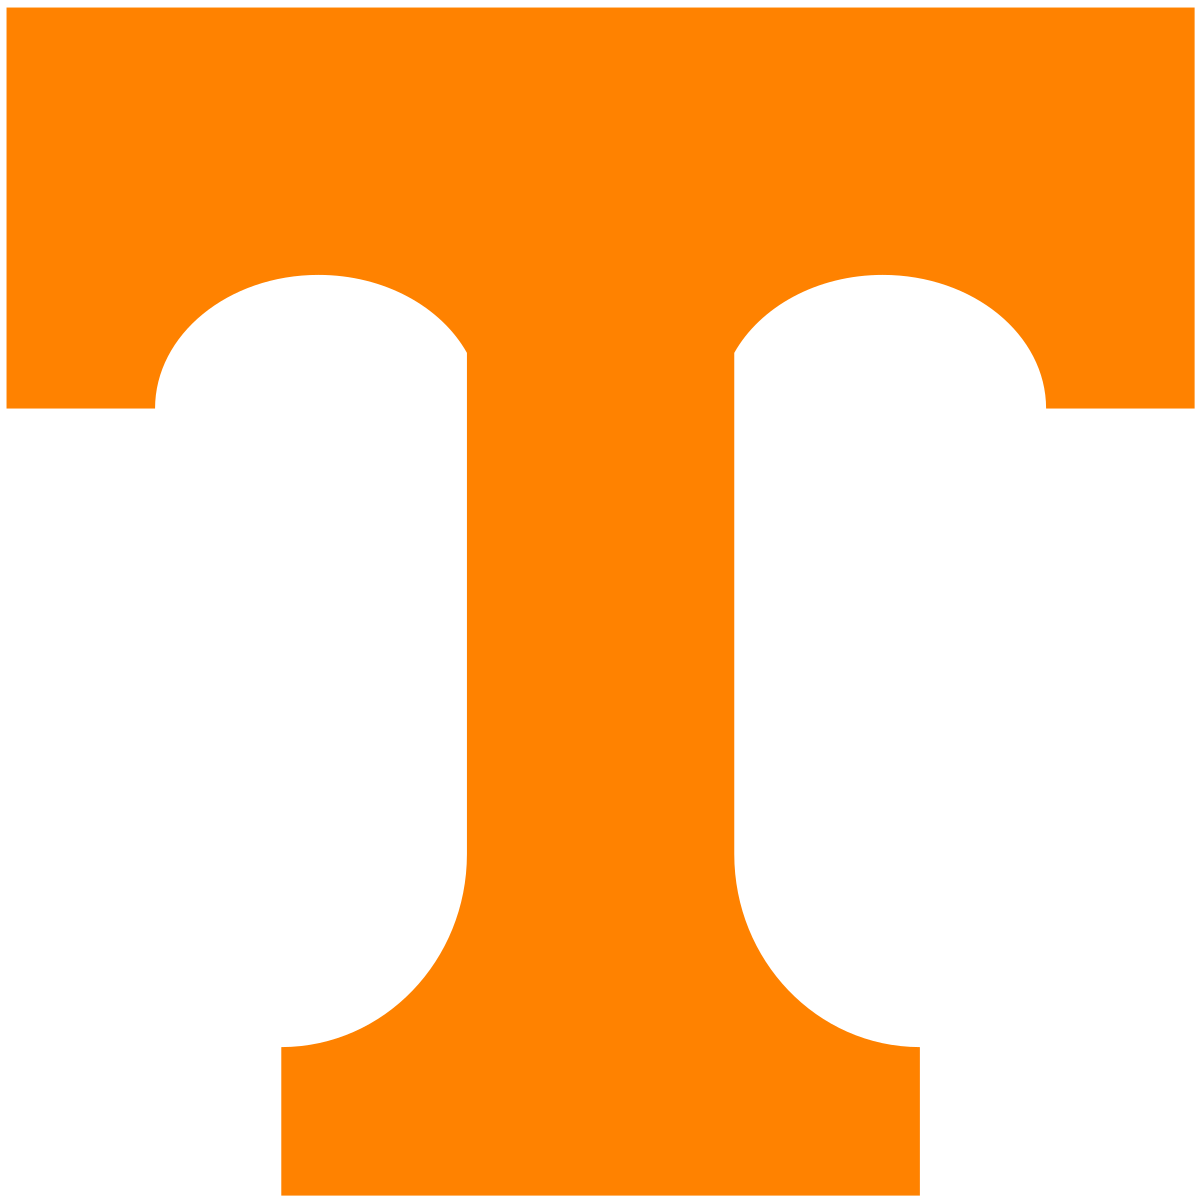 Tennessee vol.png